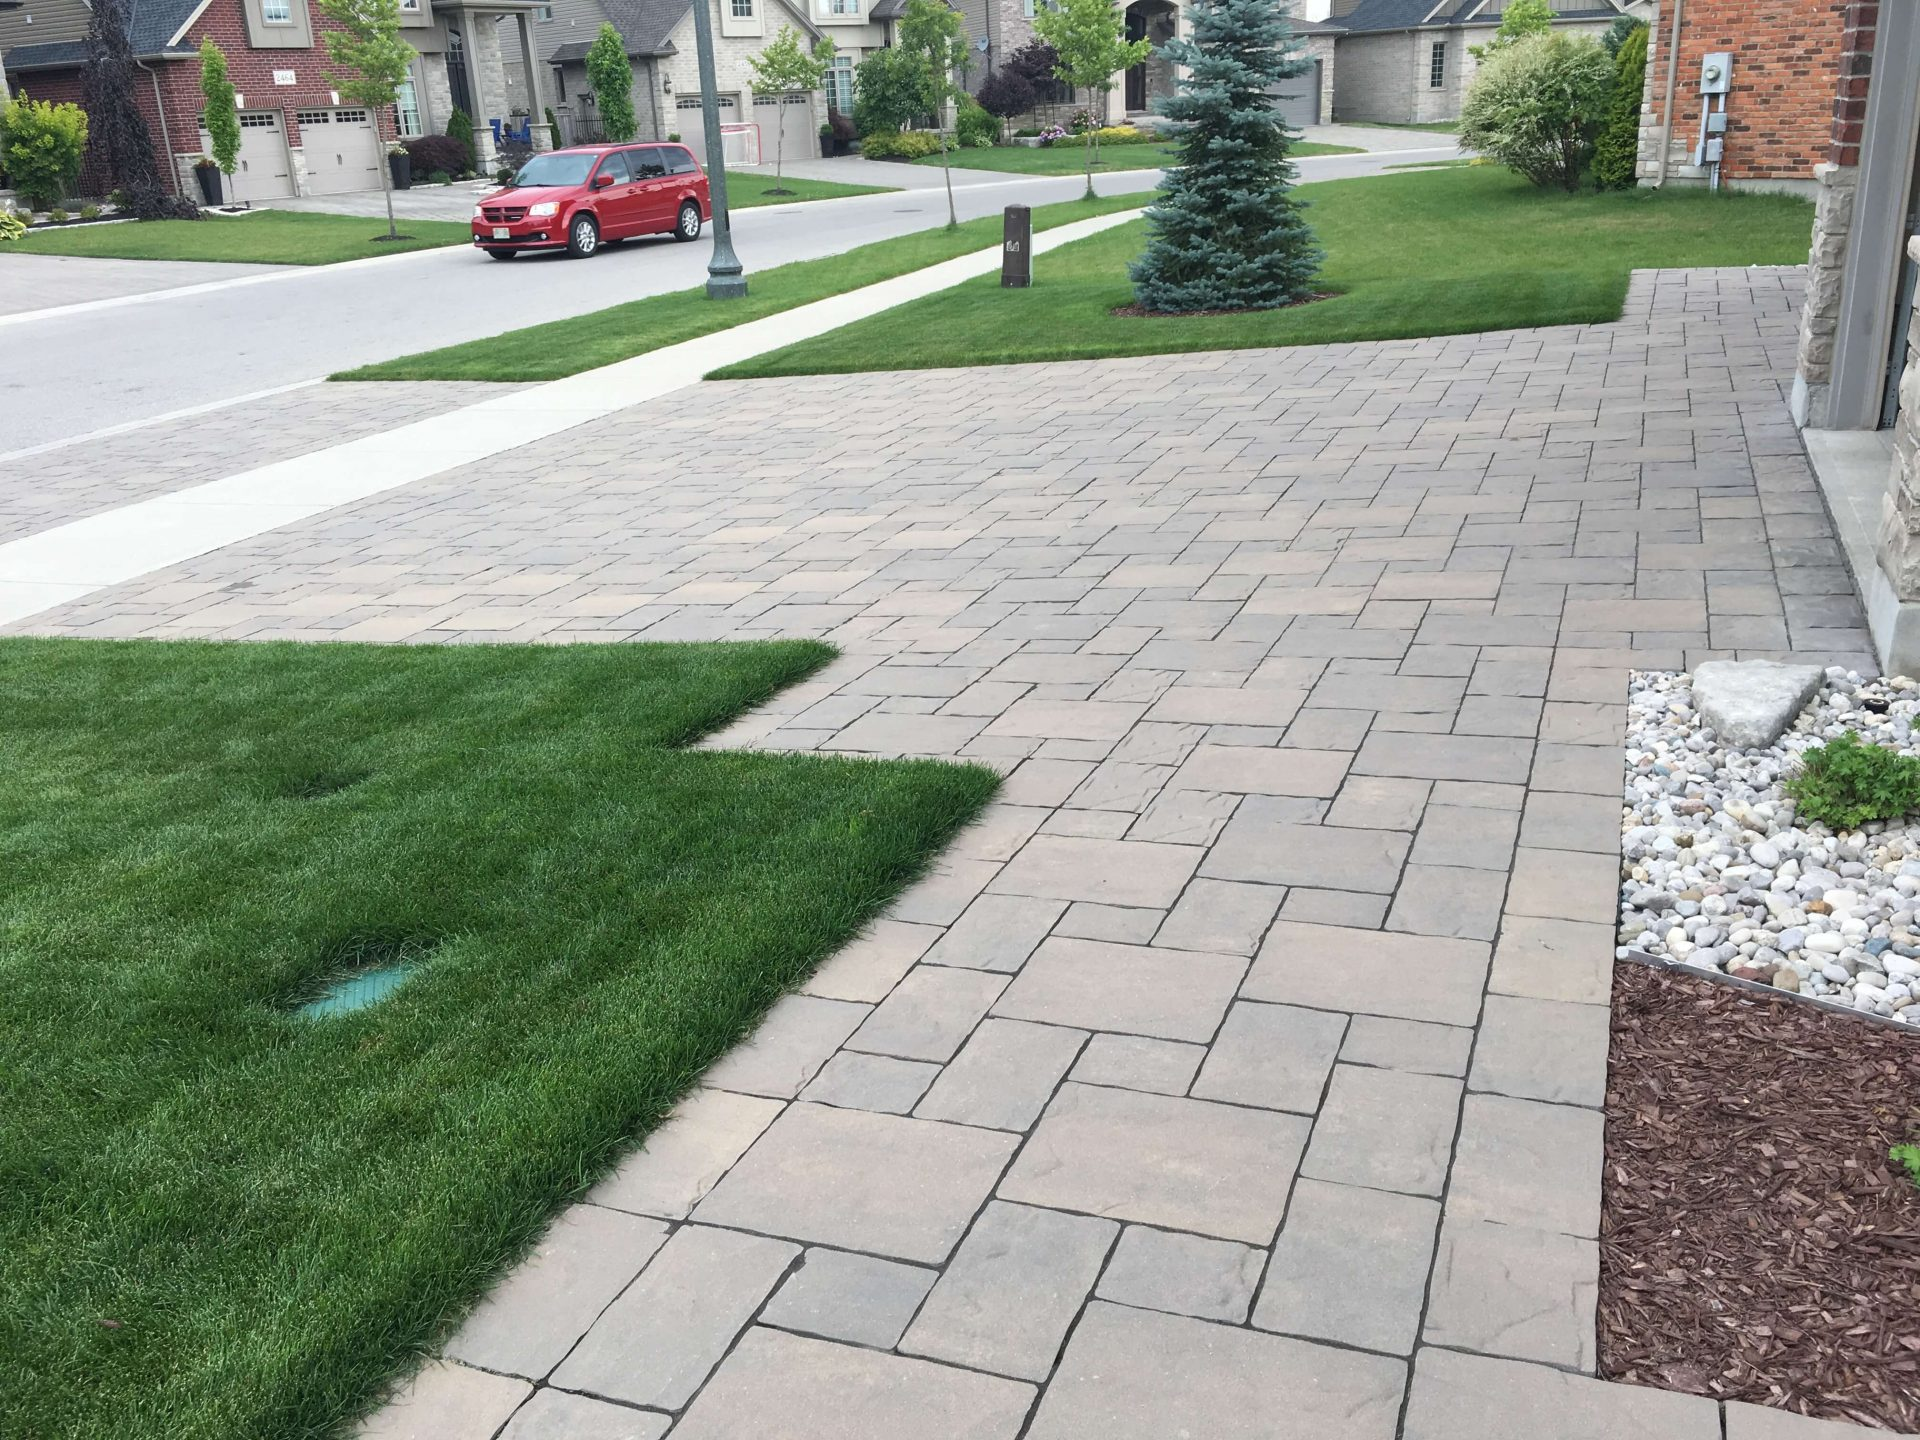 Cobble stone Drive way and fresh green grass